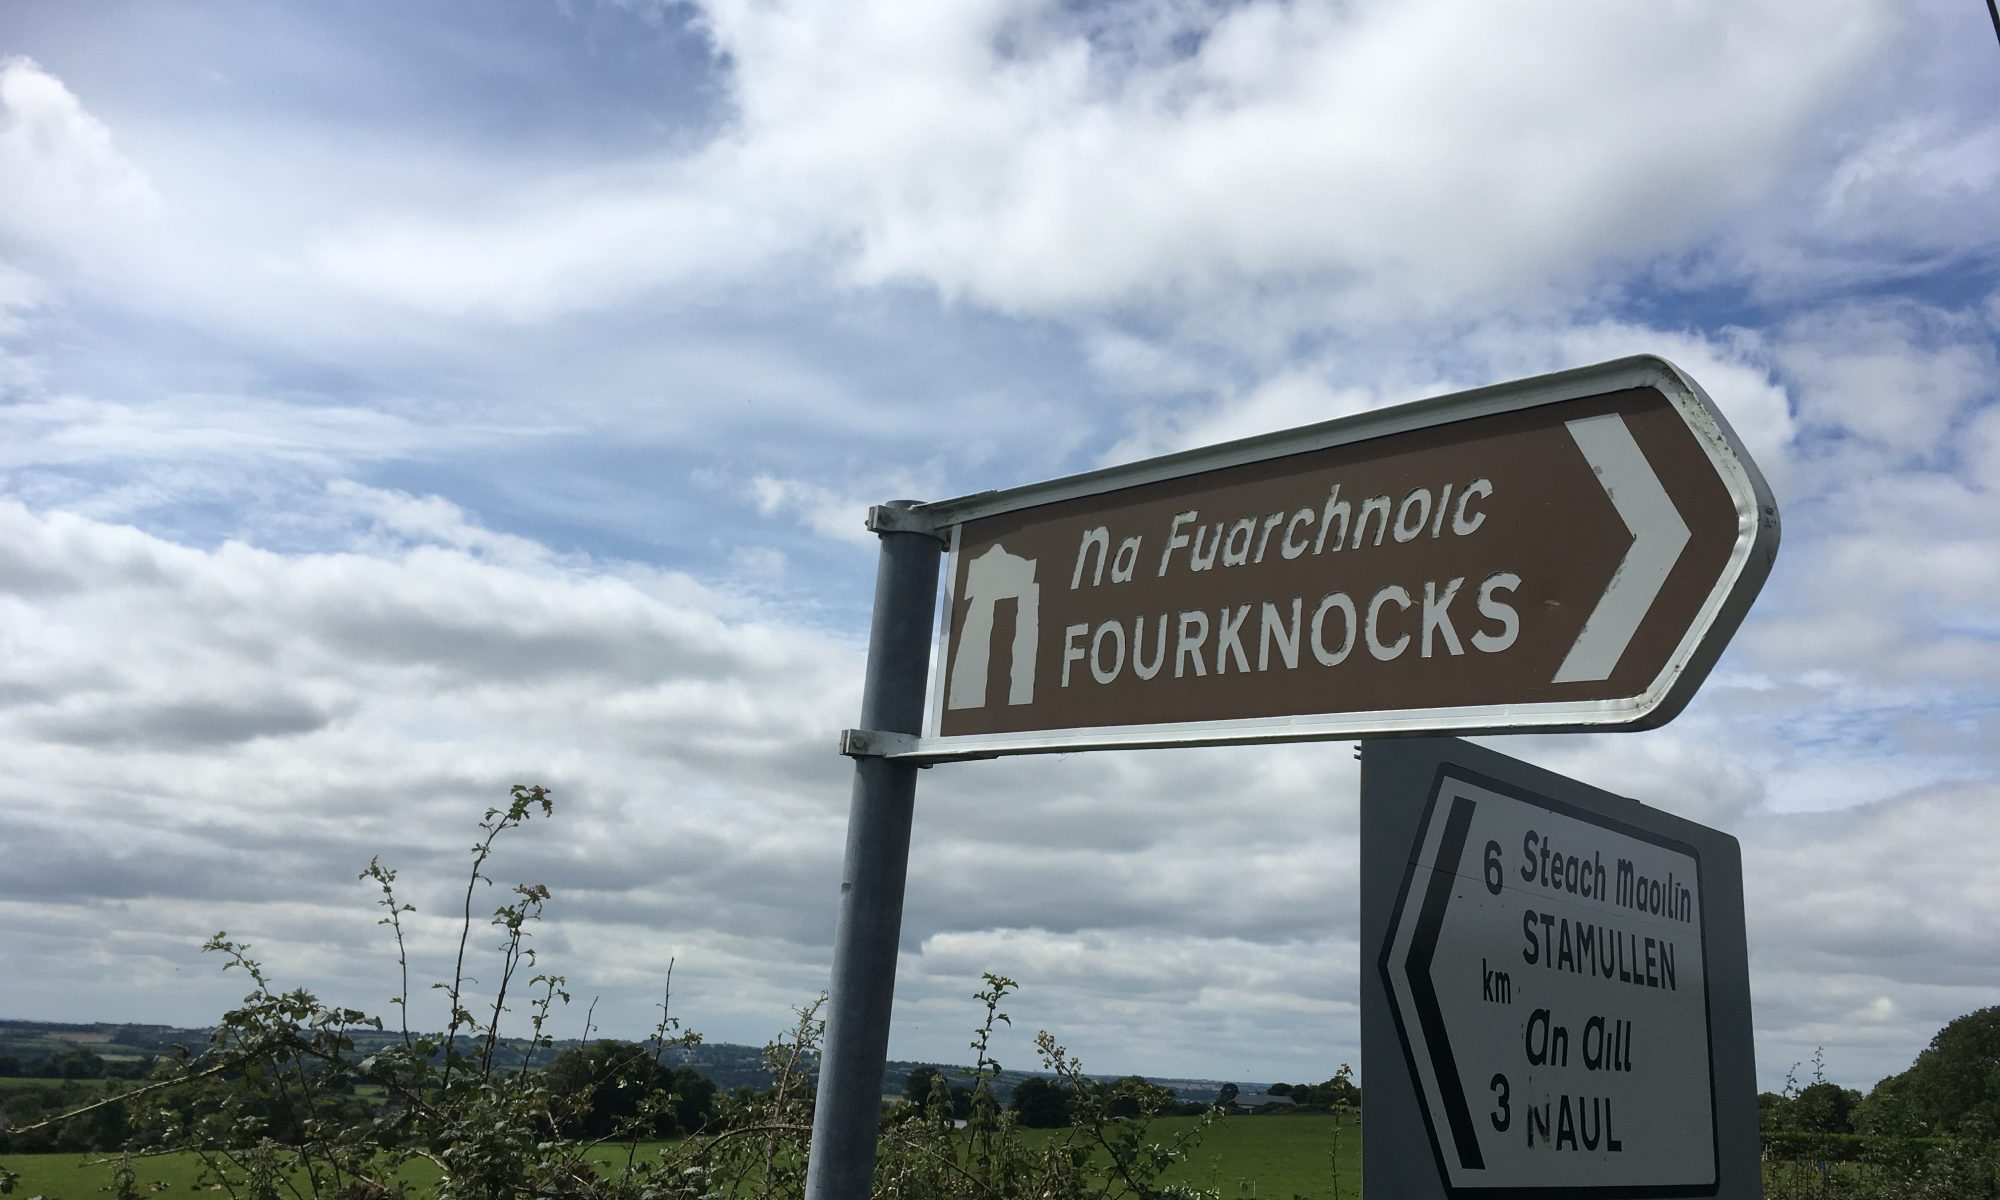 fourknocks sign